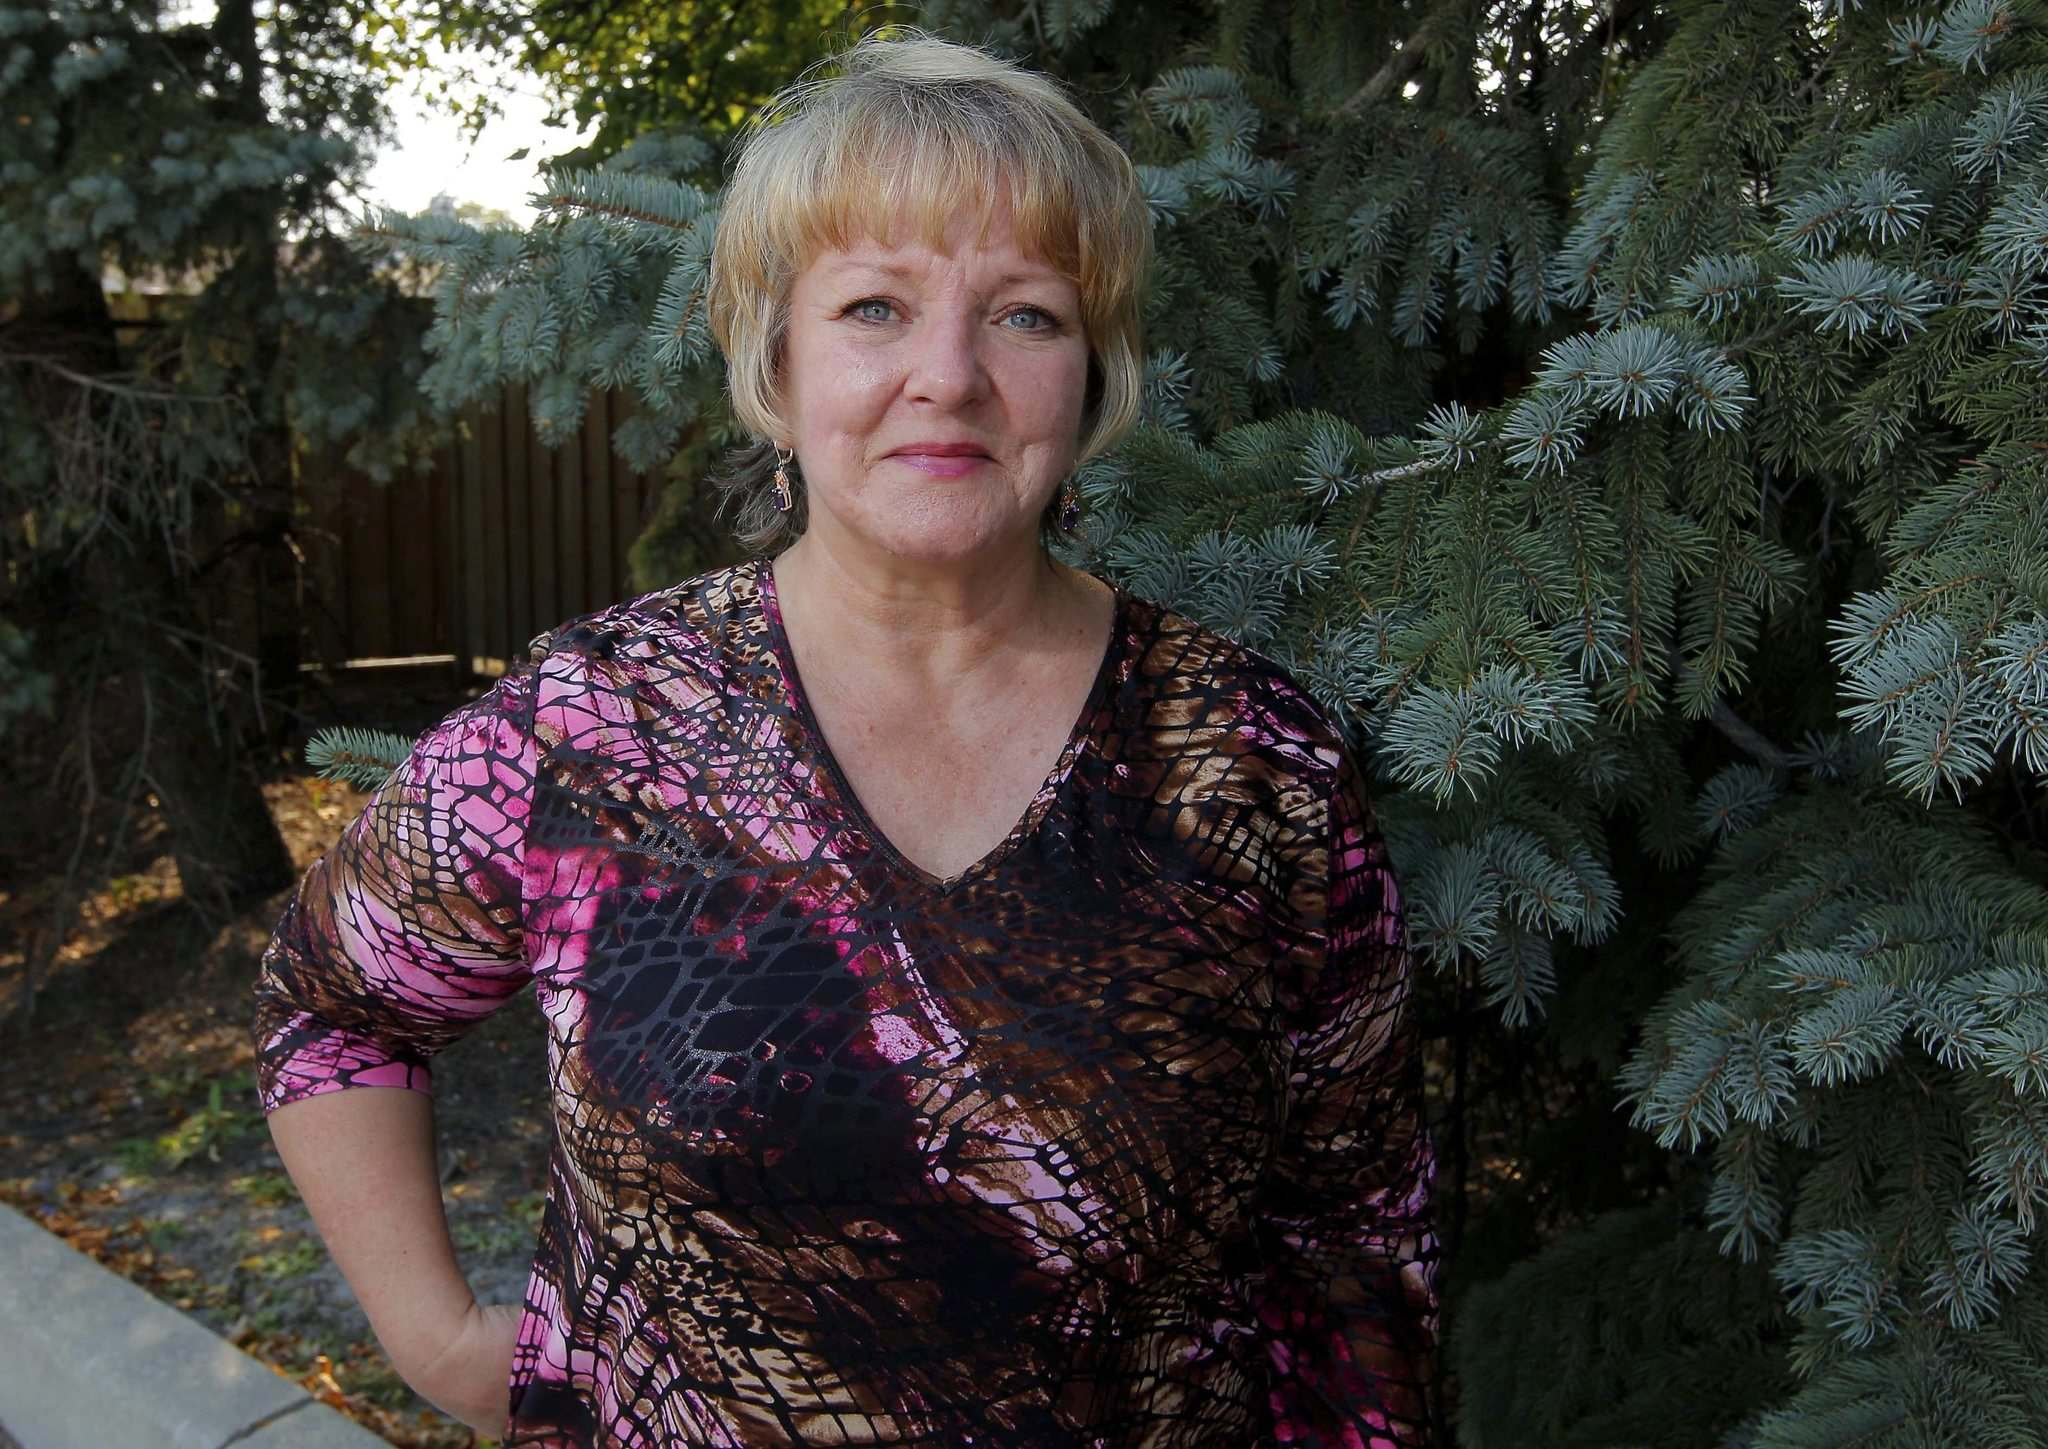 BORIS MINKEVICH / WINNIPEG FREE PRESS</p><p>A little coffee and catching up with someone in need turned out to be exactly what Kim Moujan needed to retake some control over her life.</p>